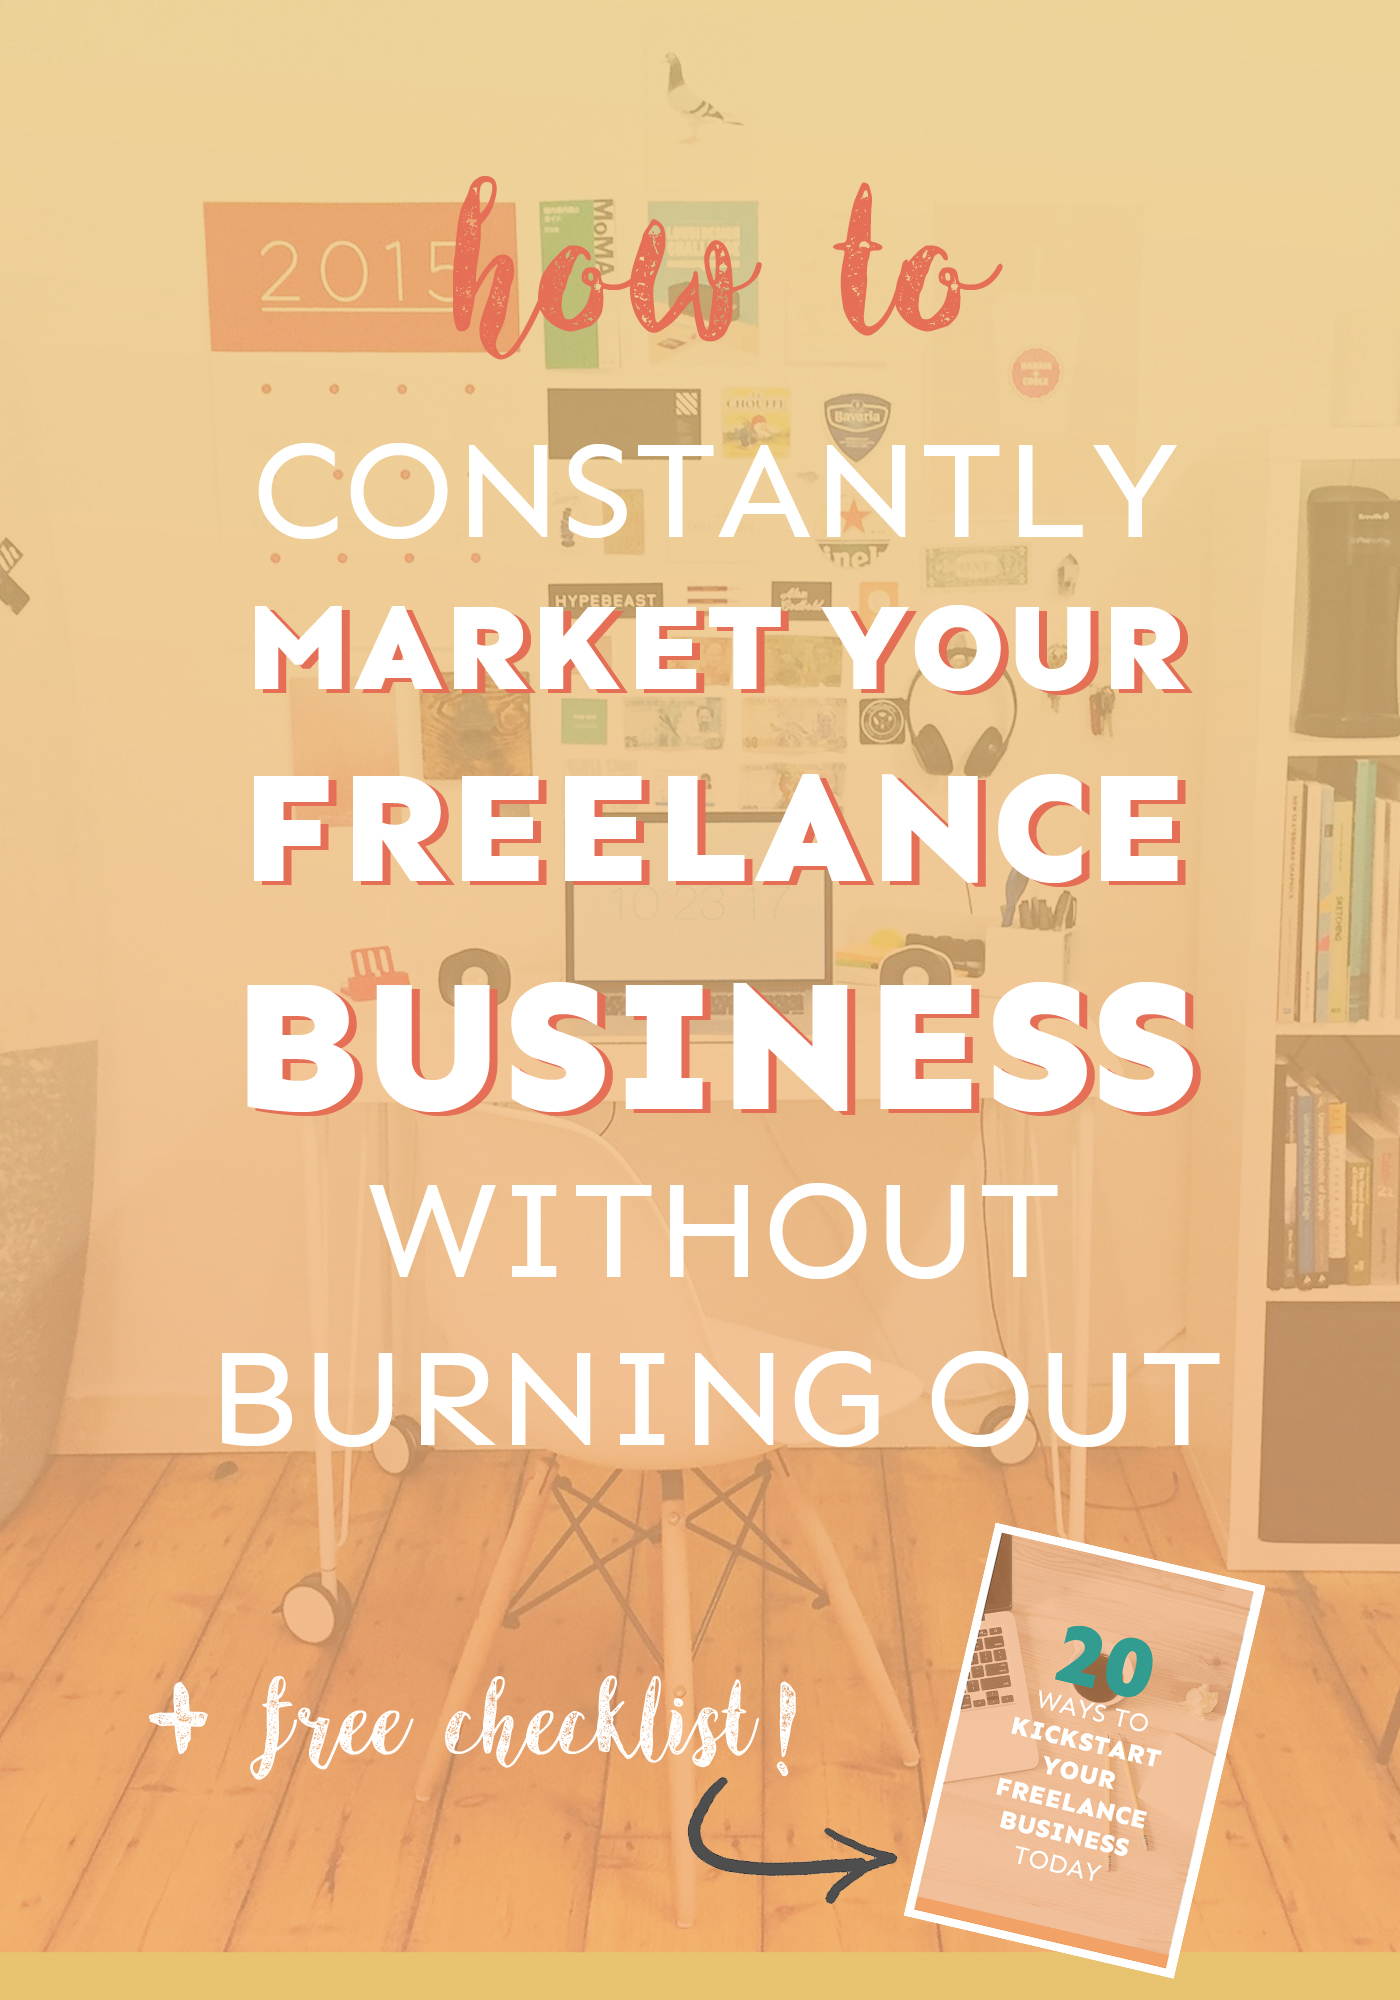 Don't know how to market your freelance business successfully? Here's a key strategy you can use to avoid burnout and consistently get clients! - Plus, there's a free worksheet to help you out.